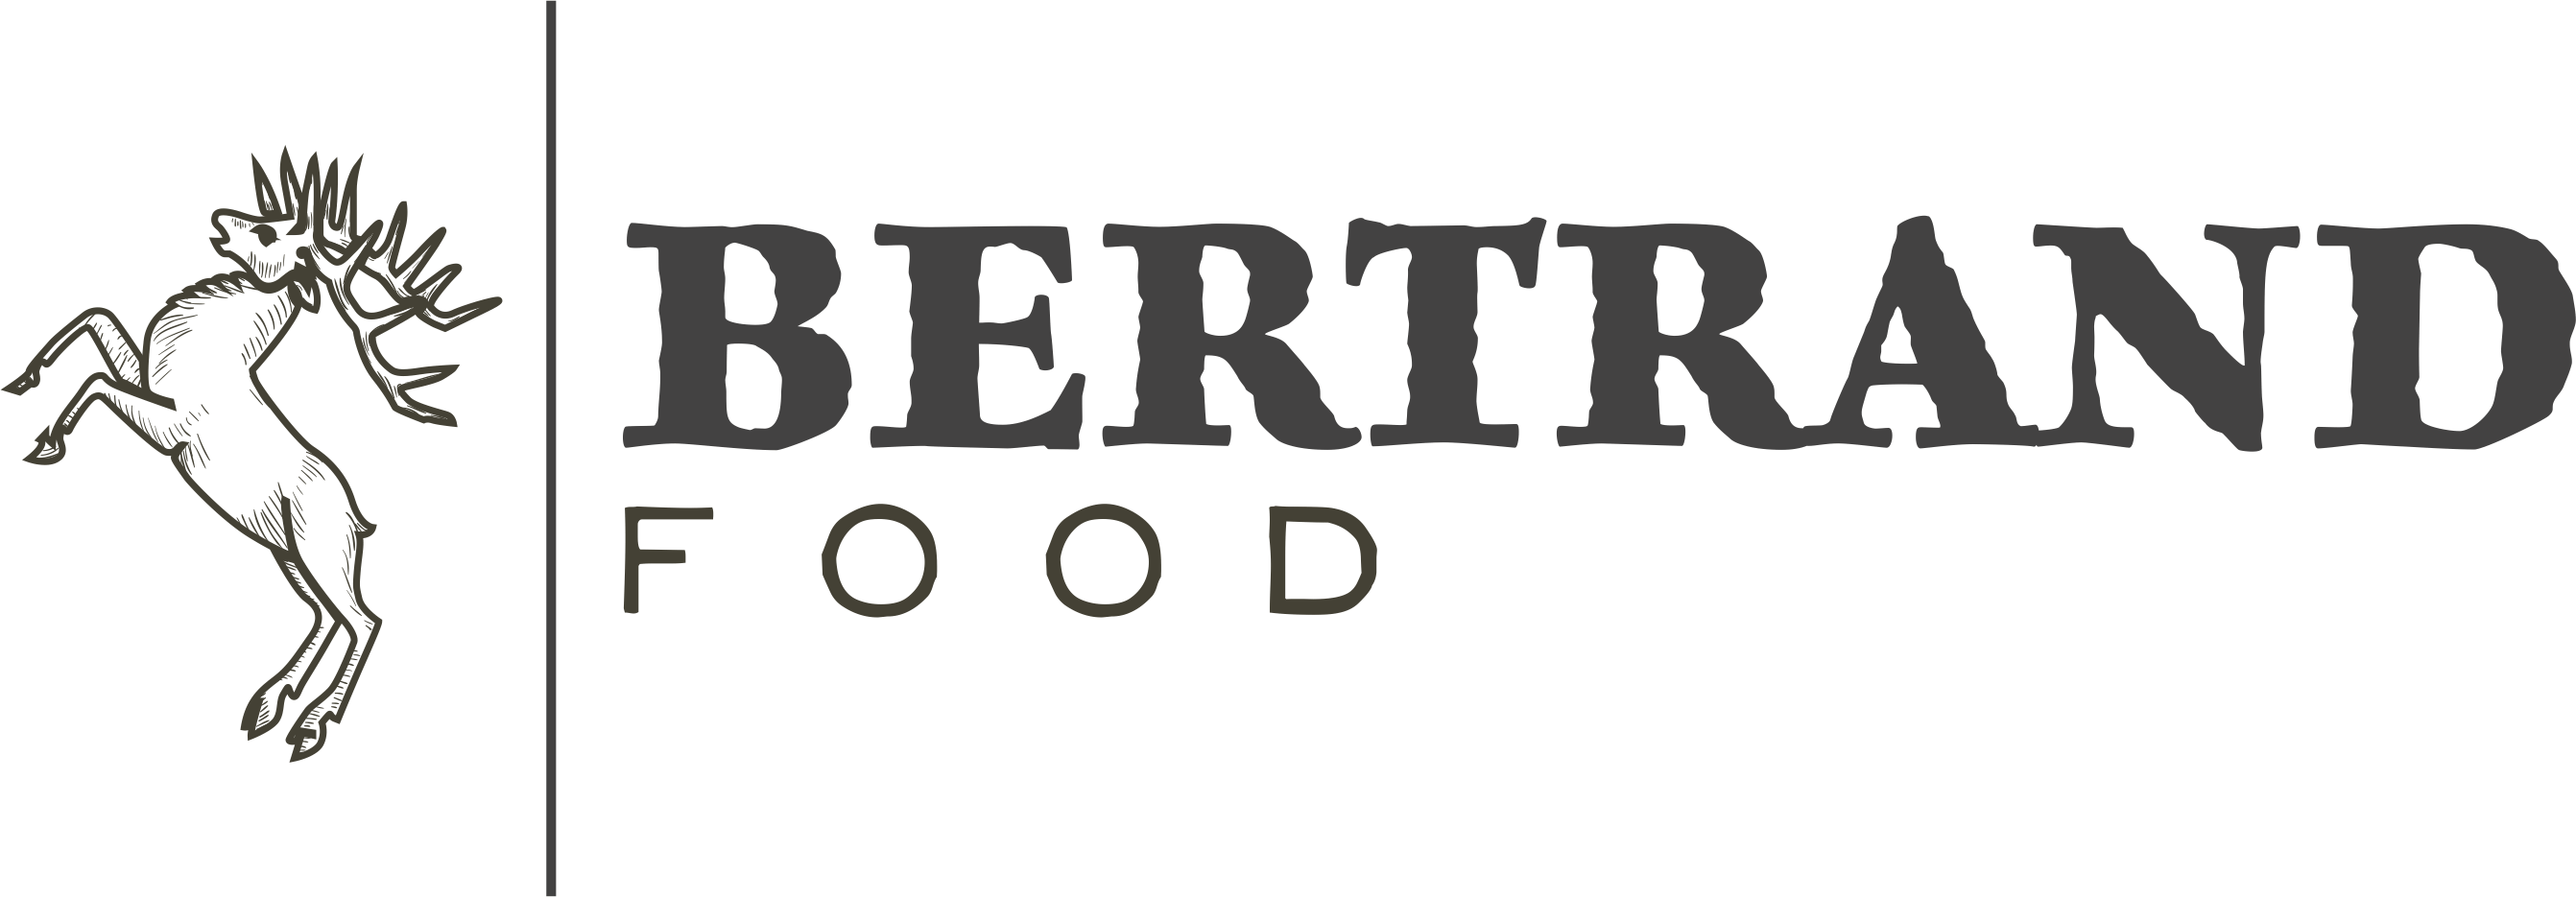 bertrand-food-logo